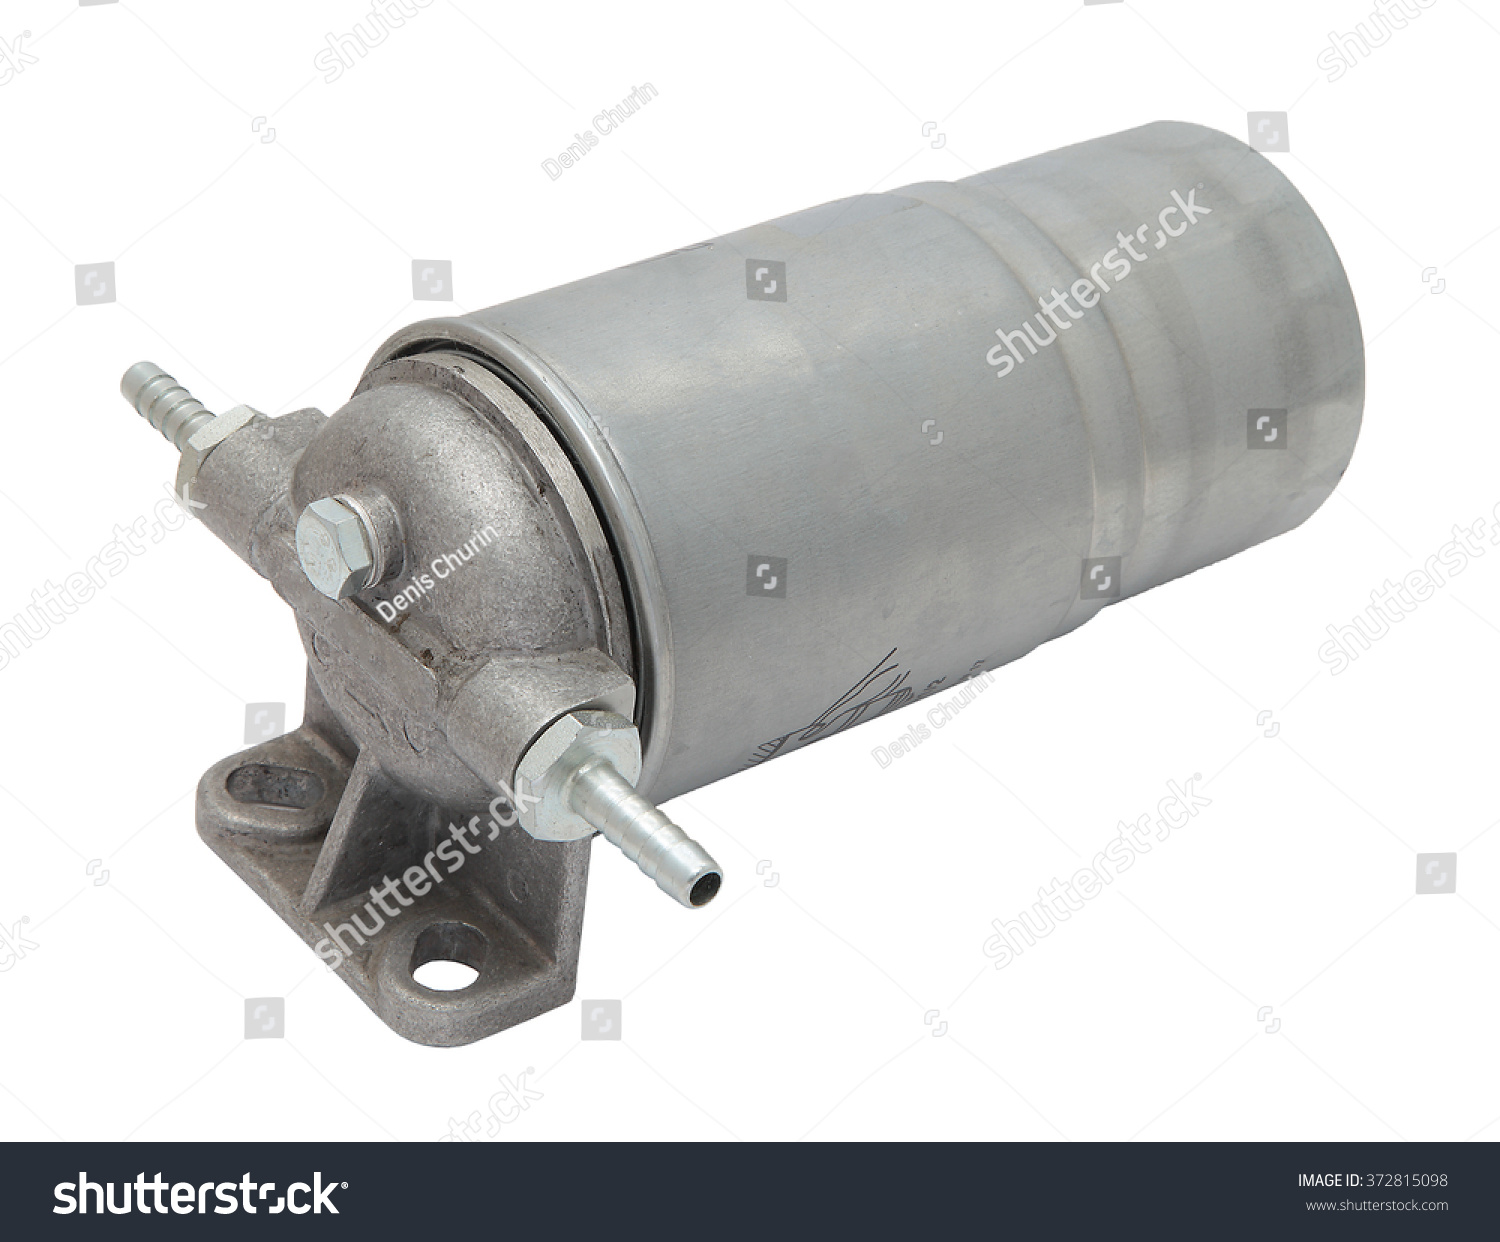 hight resolution of grey metal boat fuel filter with hose inlet and outlet fittings isolated on white